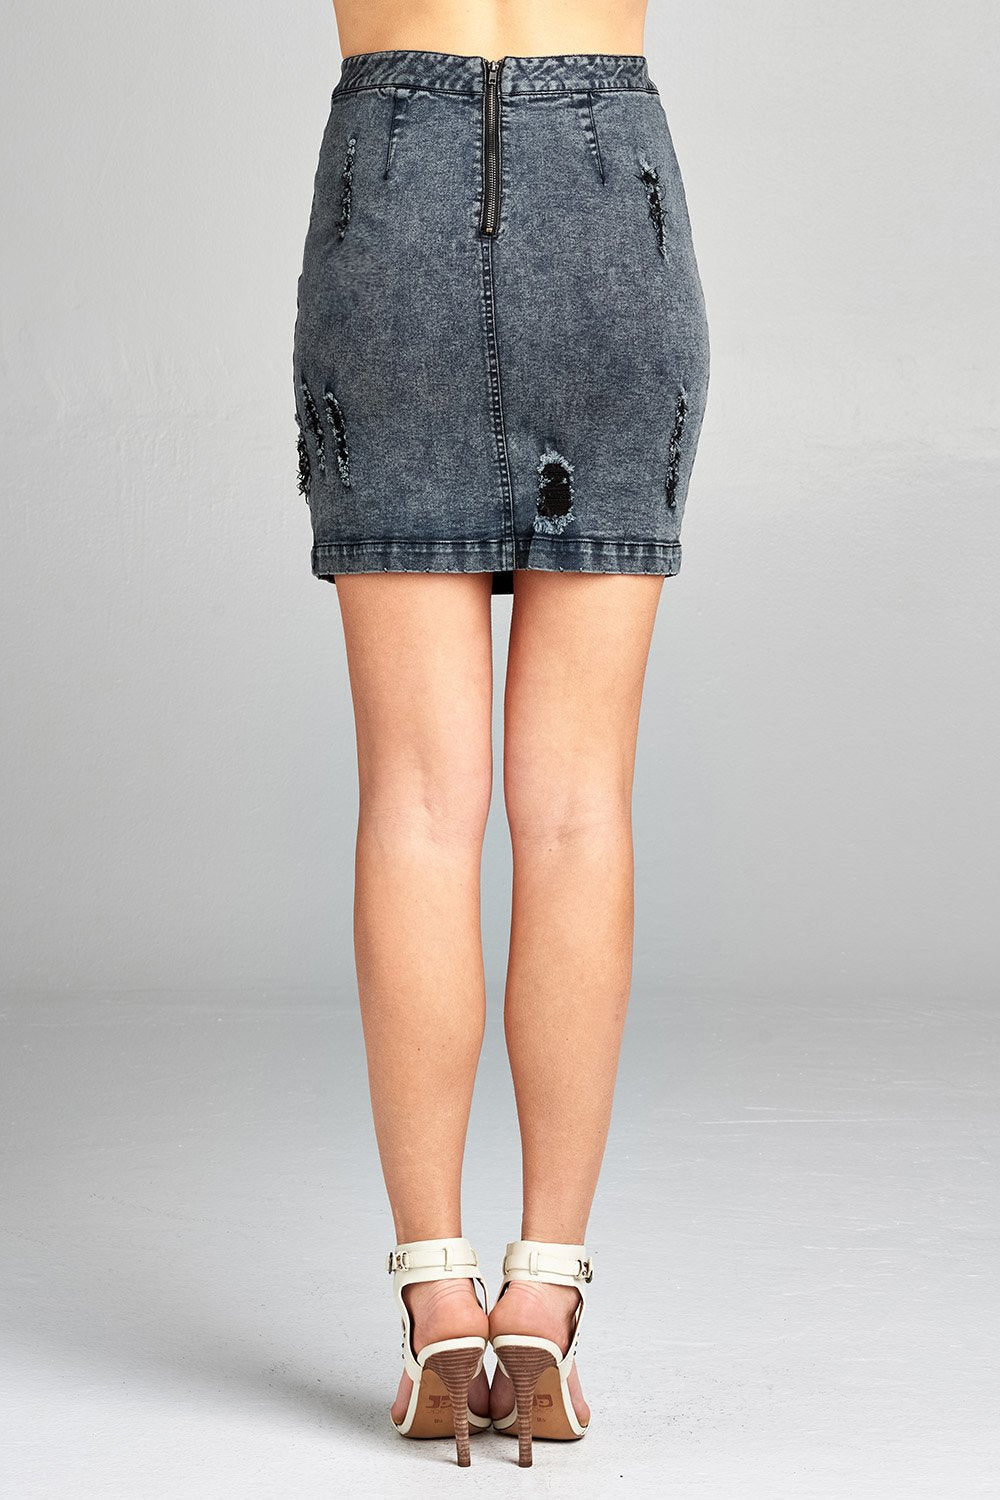 Khanomak Women's Stretch Distressed Faded Wash Denim Mini Skirt